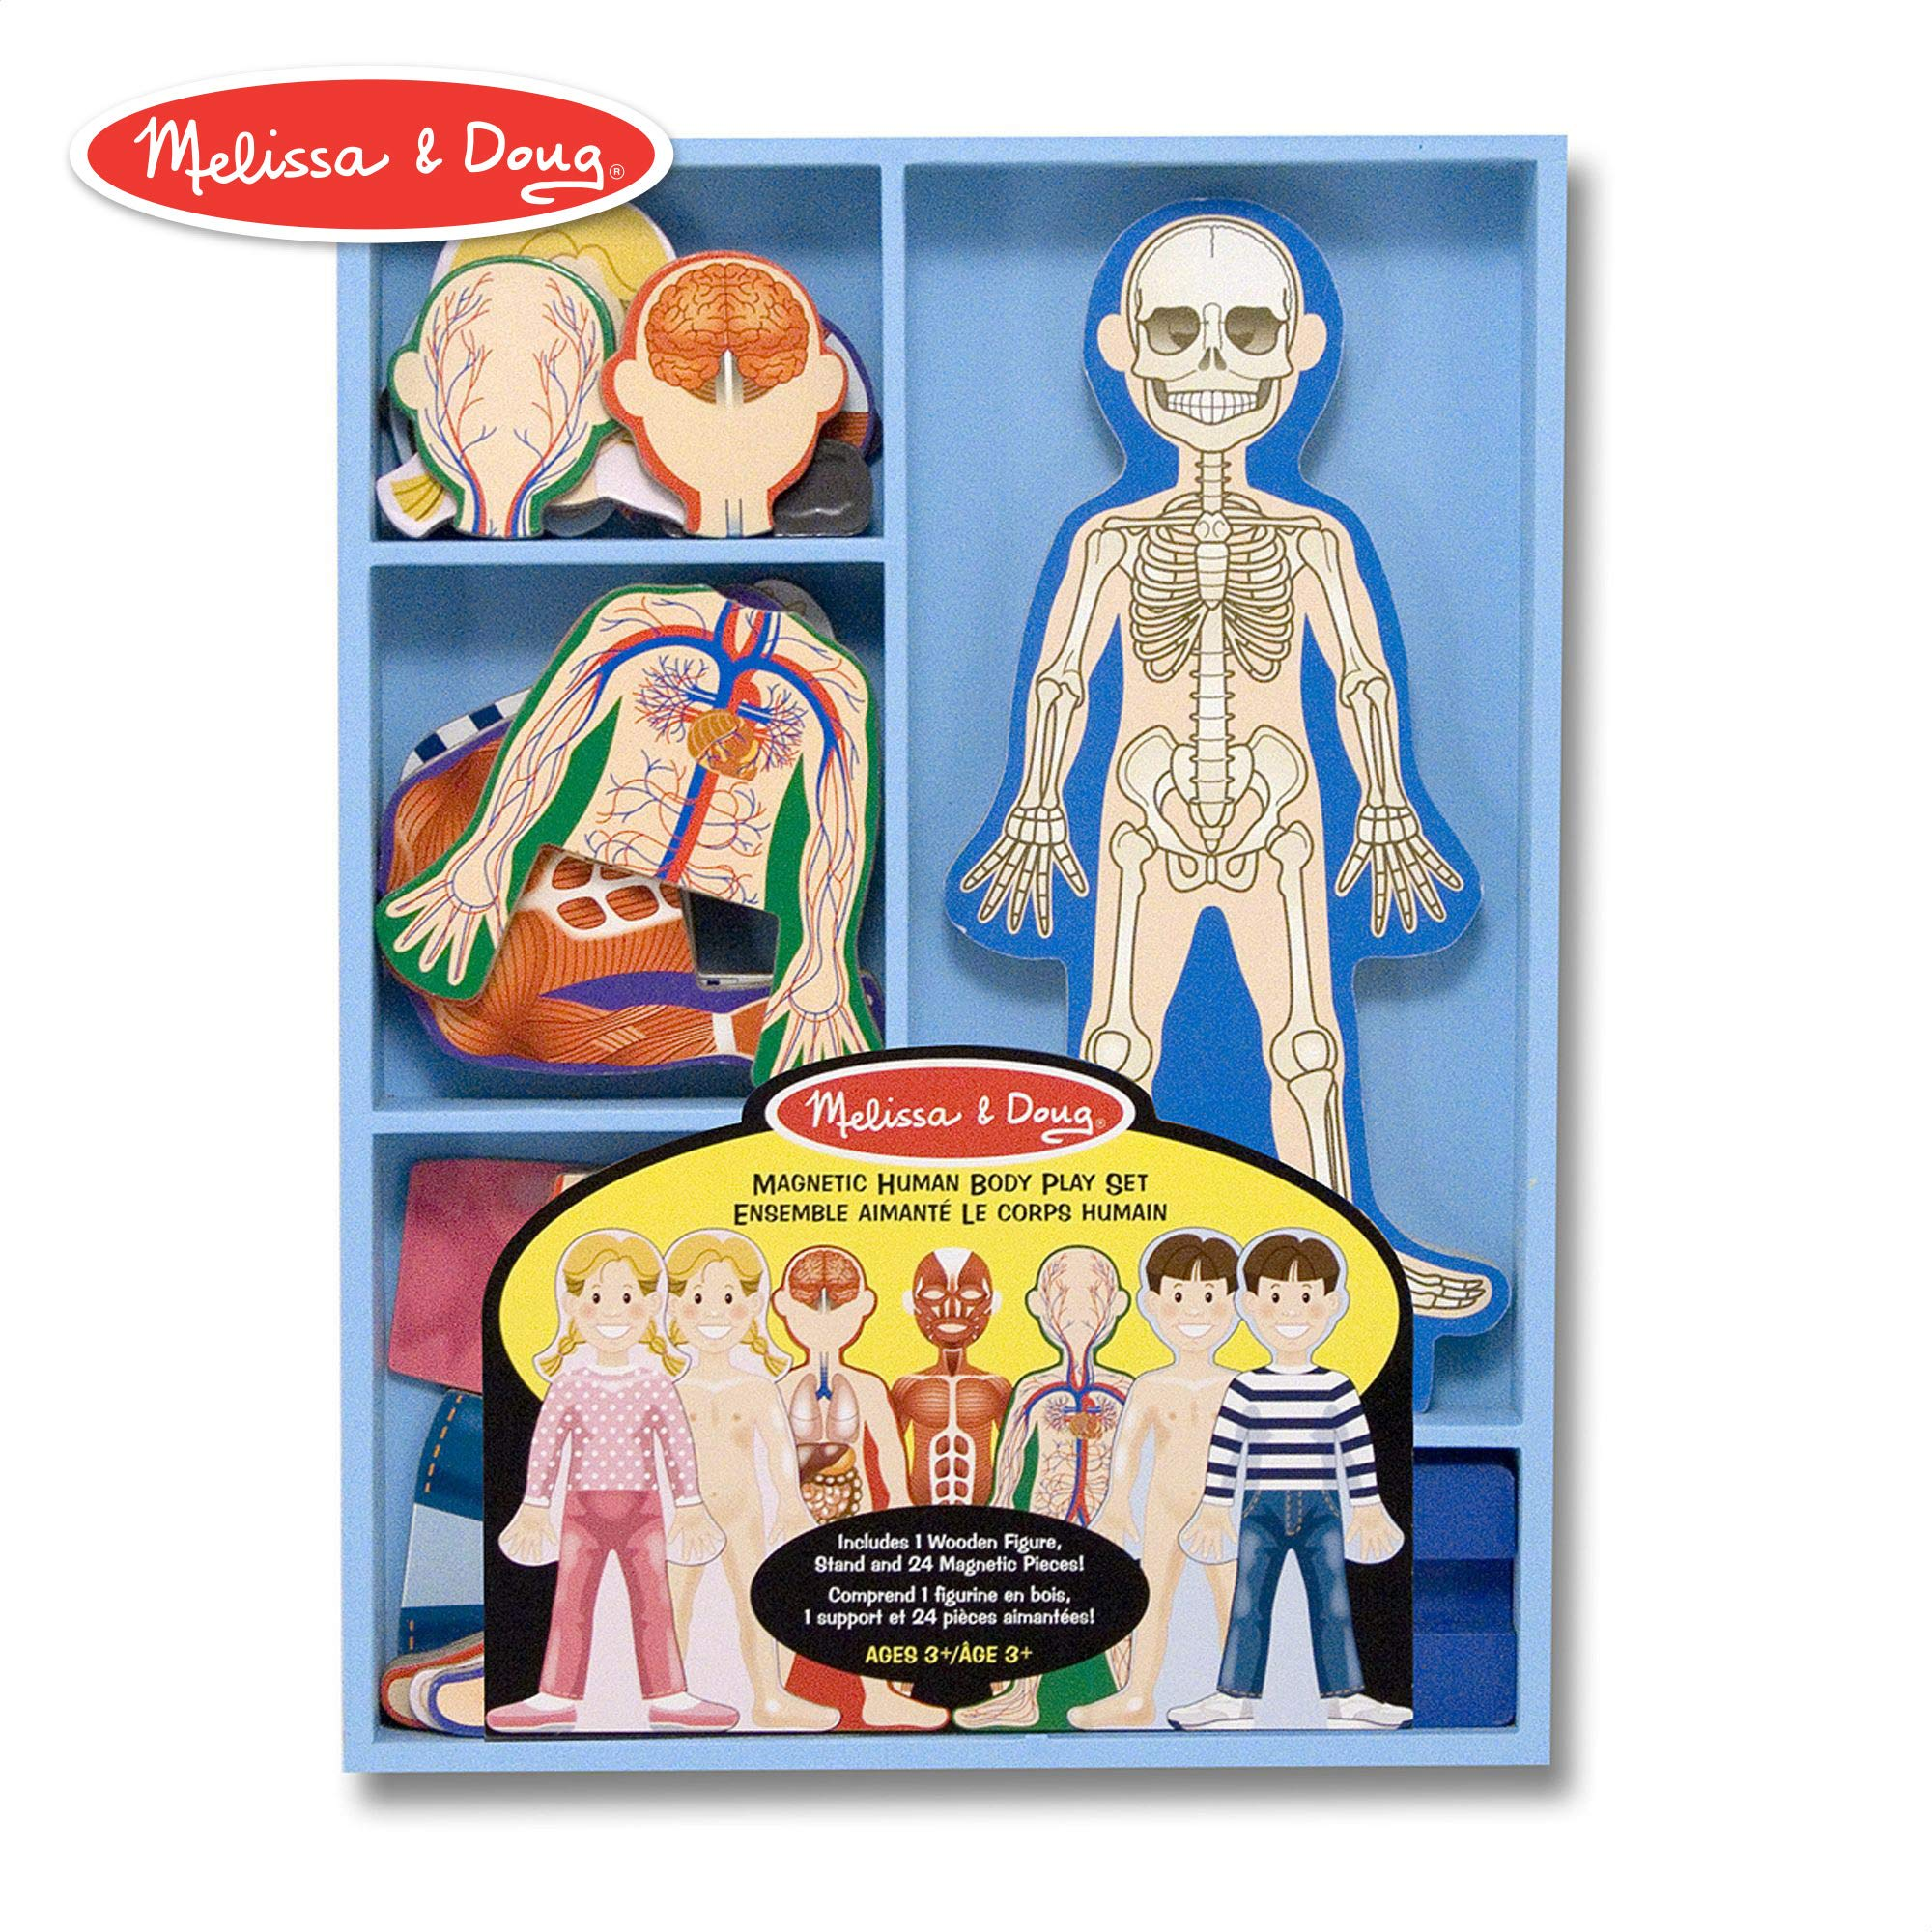 Melissa & Doug Magnetic Human Body Anatomy Play Set (Anatomically Correct Boy and Girl Magnets, 24 Magnetic Pieces and Storage Tray) by Melissa & Doug